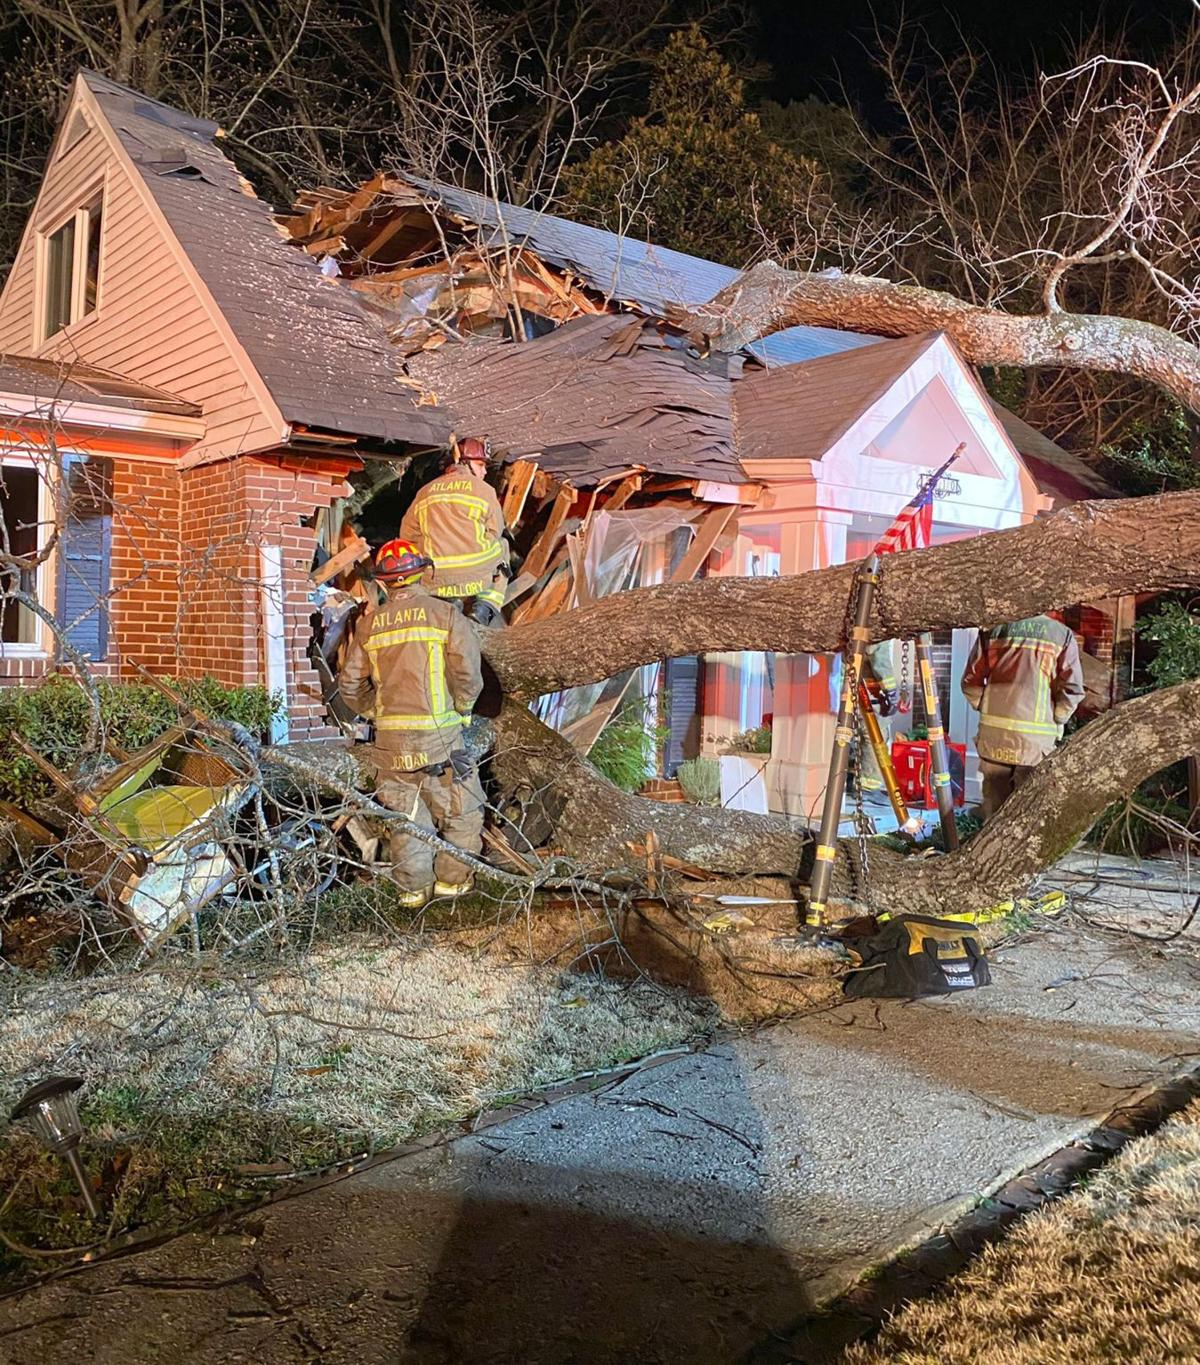 011520_MNS_tree_death_002 firefighters at house with tree in it